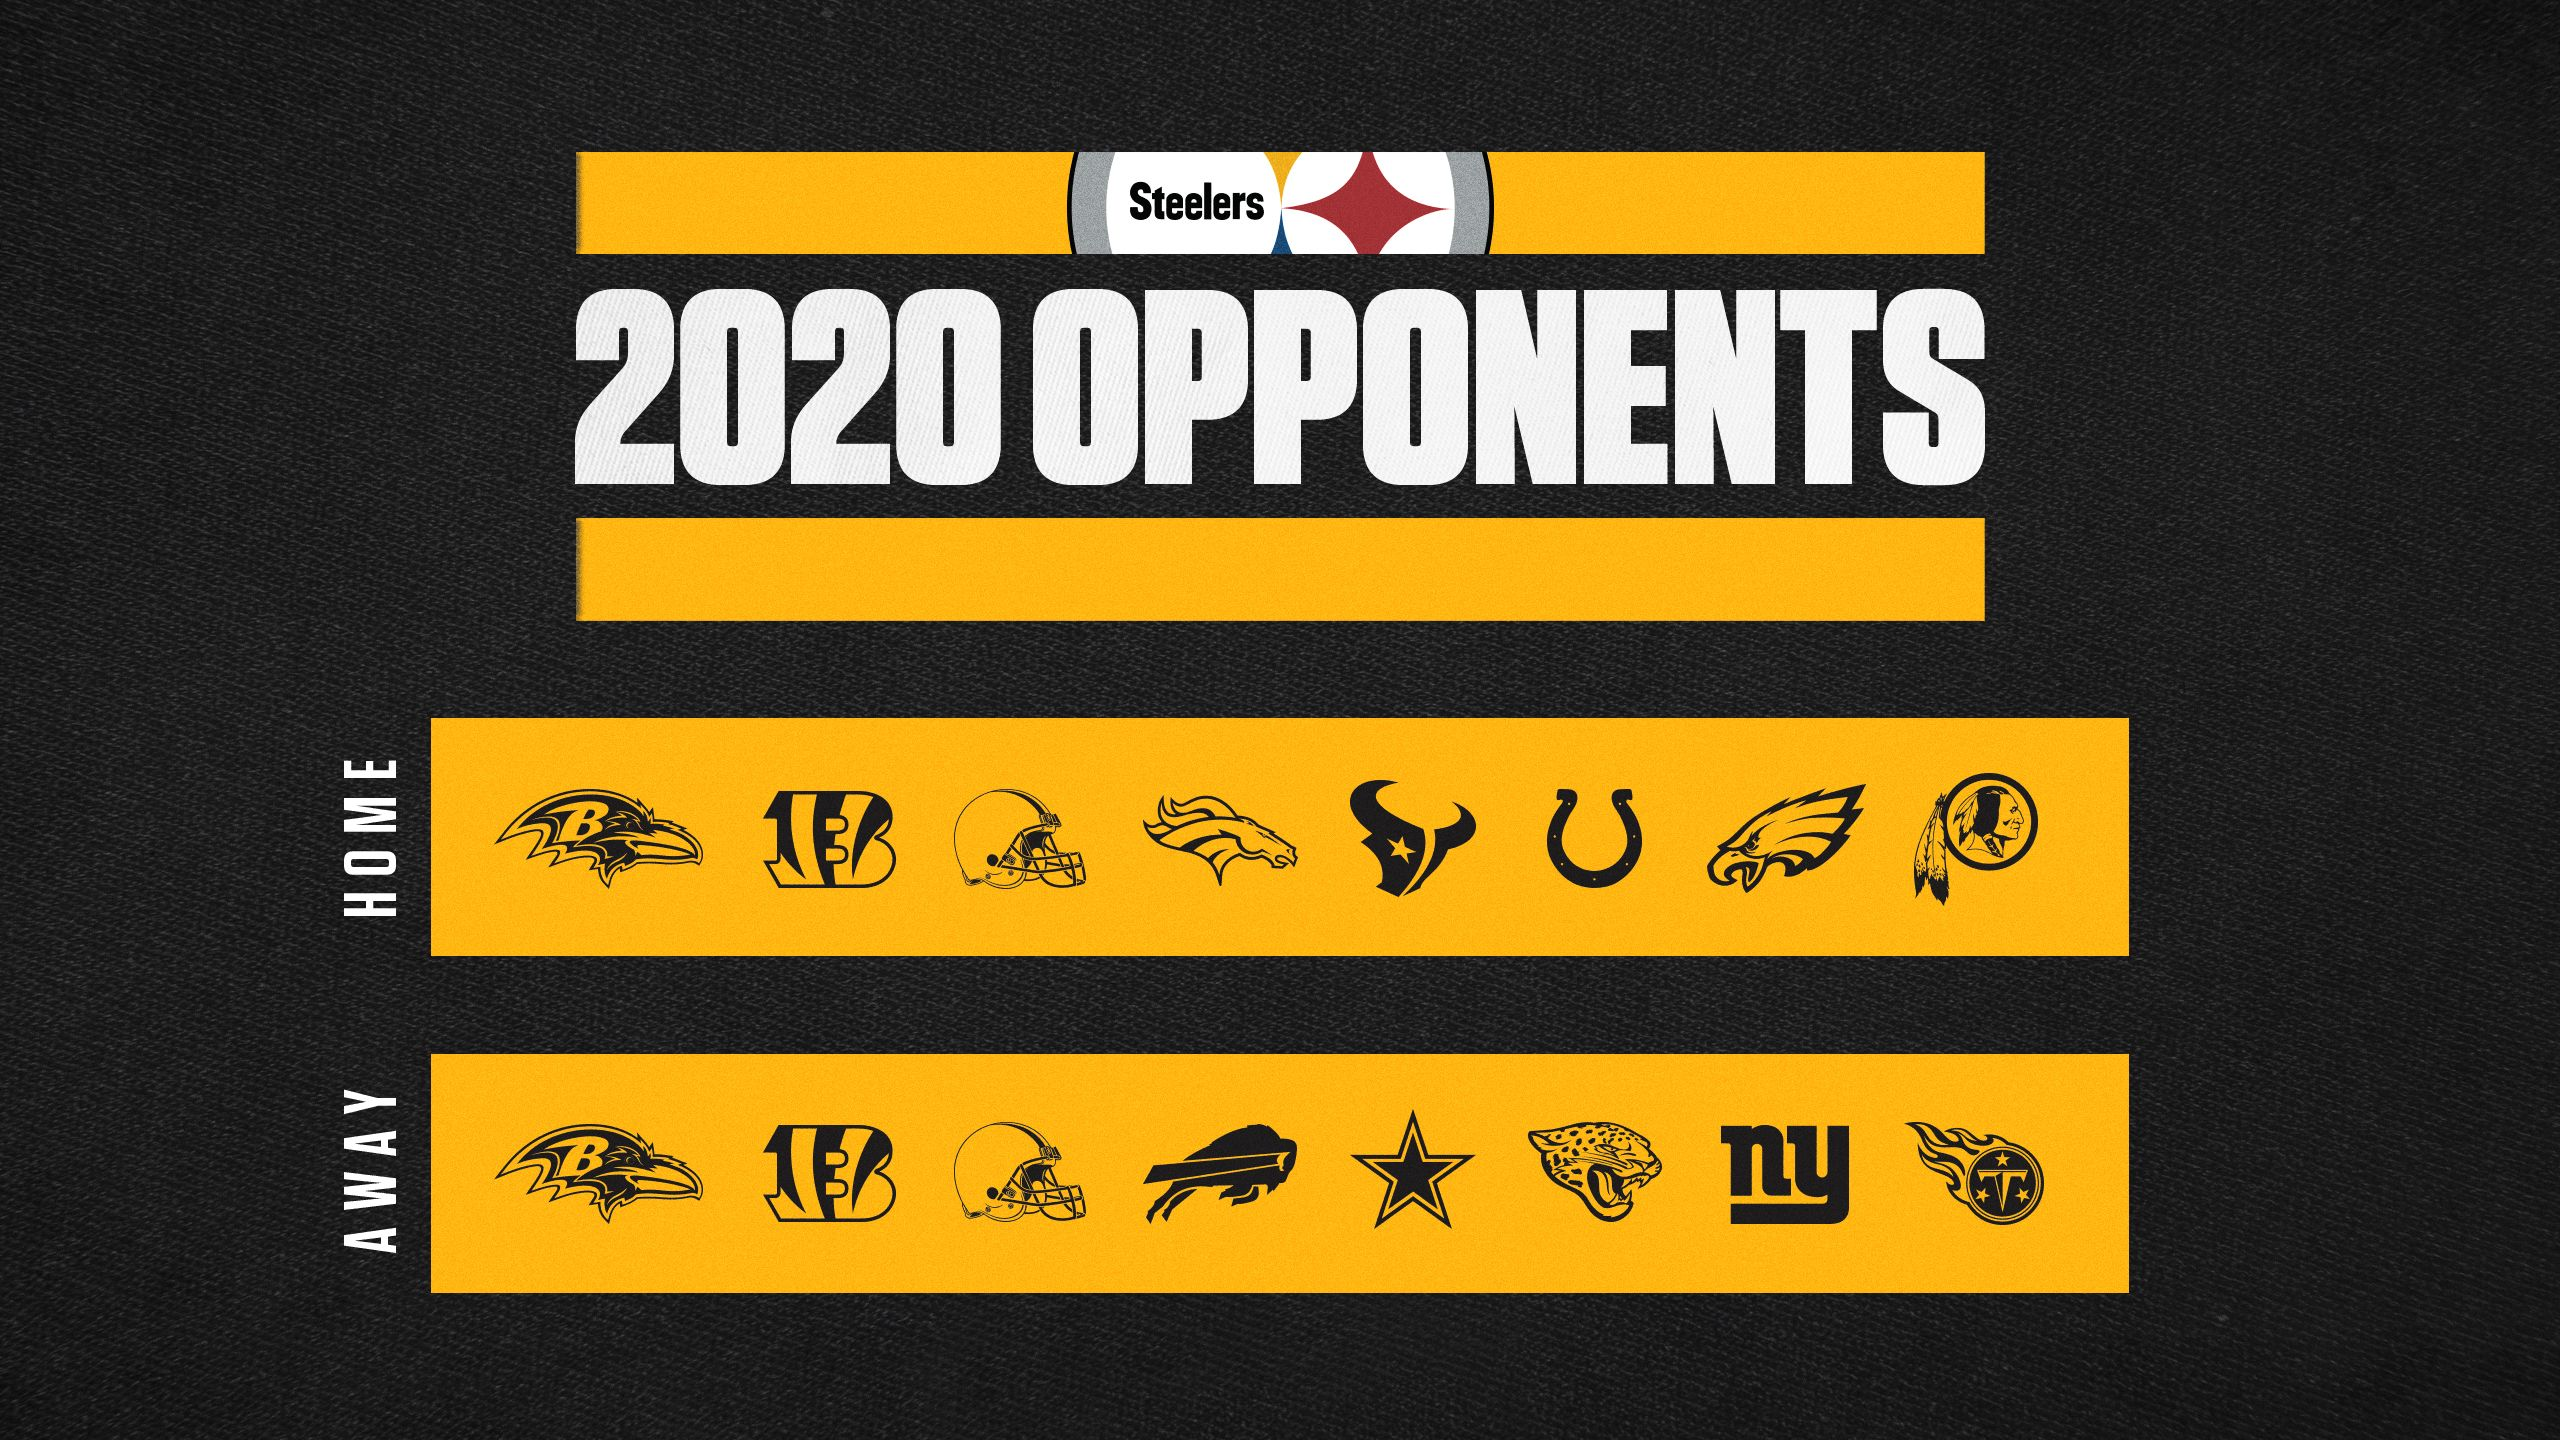 2020-Opponents-Announcement-CP2